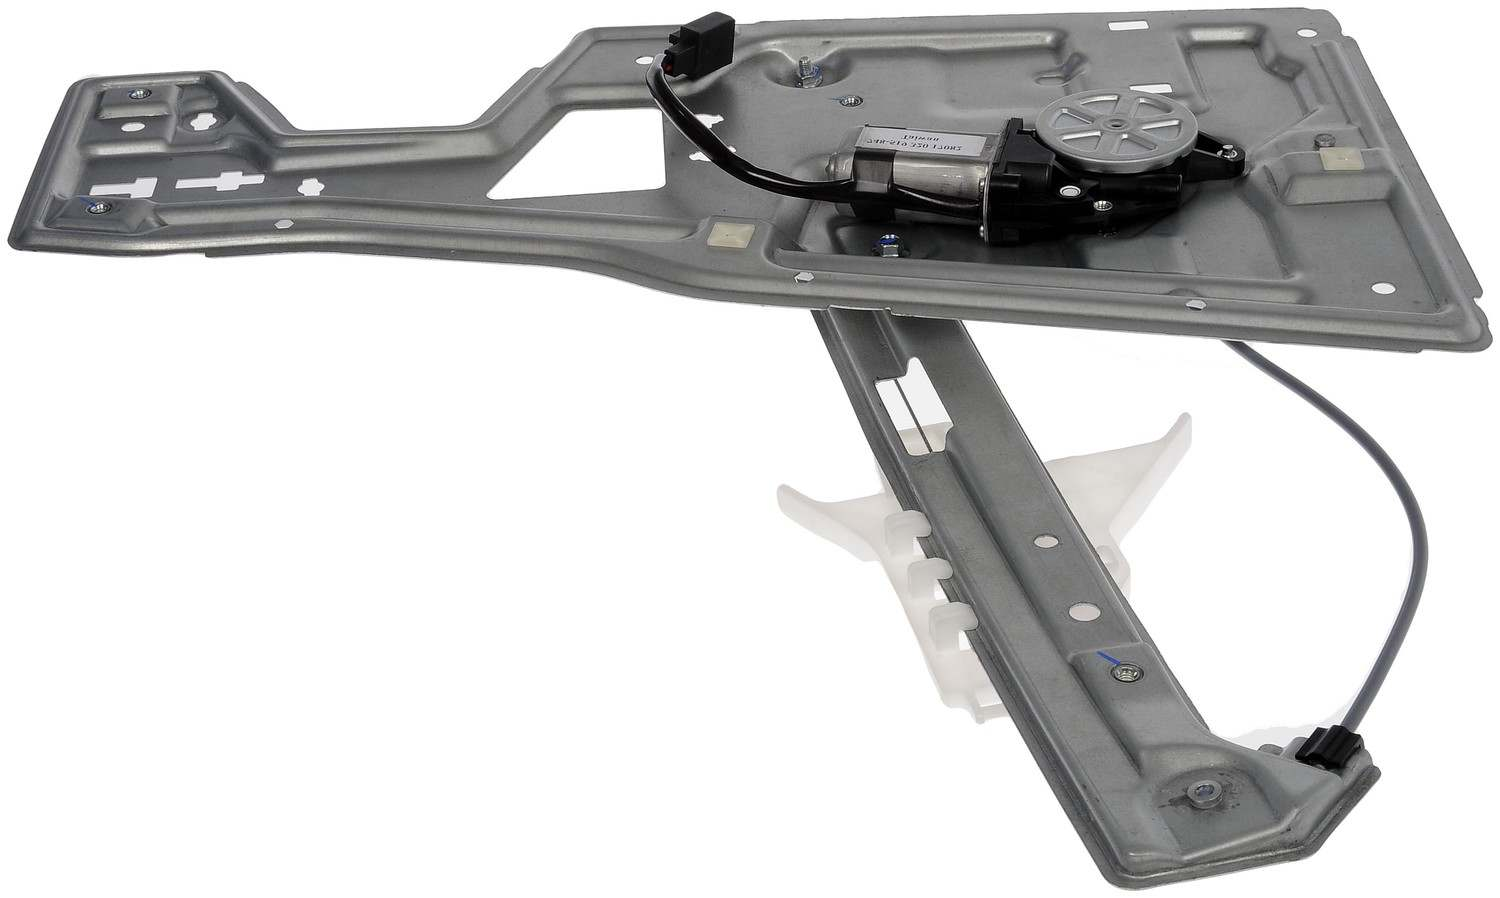 DORMAN OE SOLUTIONS - Power Window Motor And Regulator Assembly - DRE 748-518